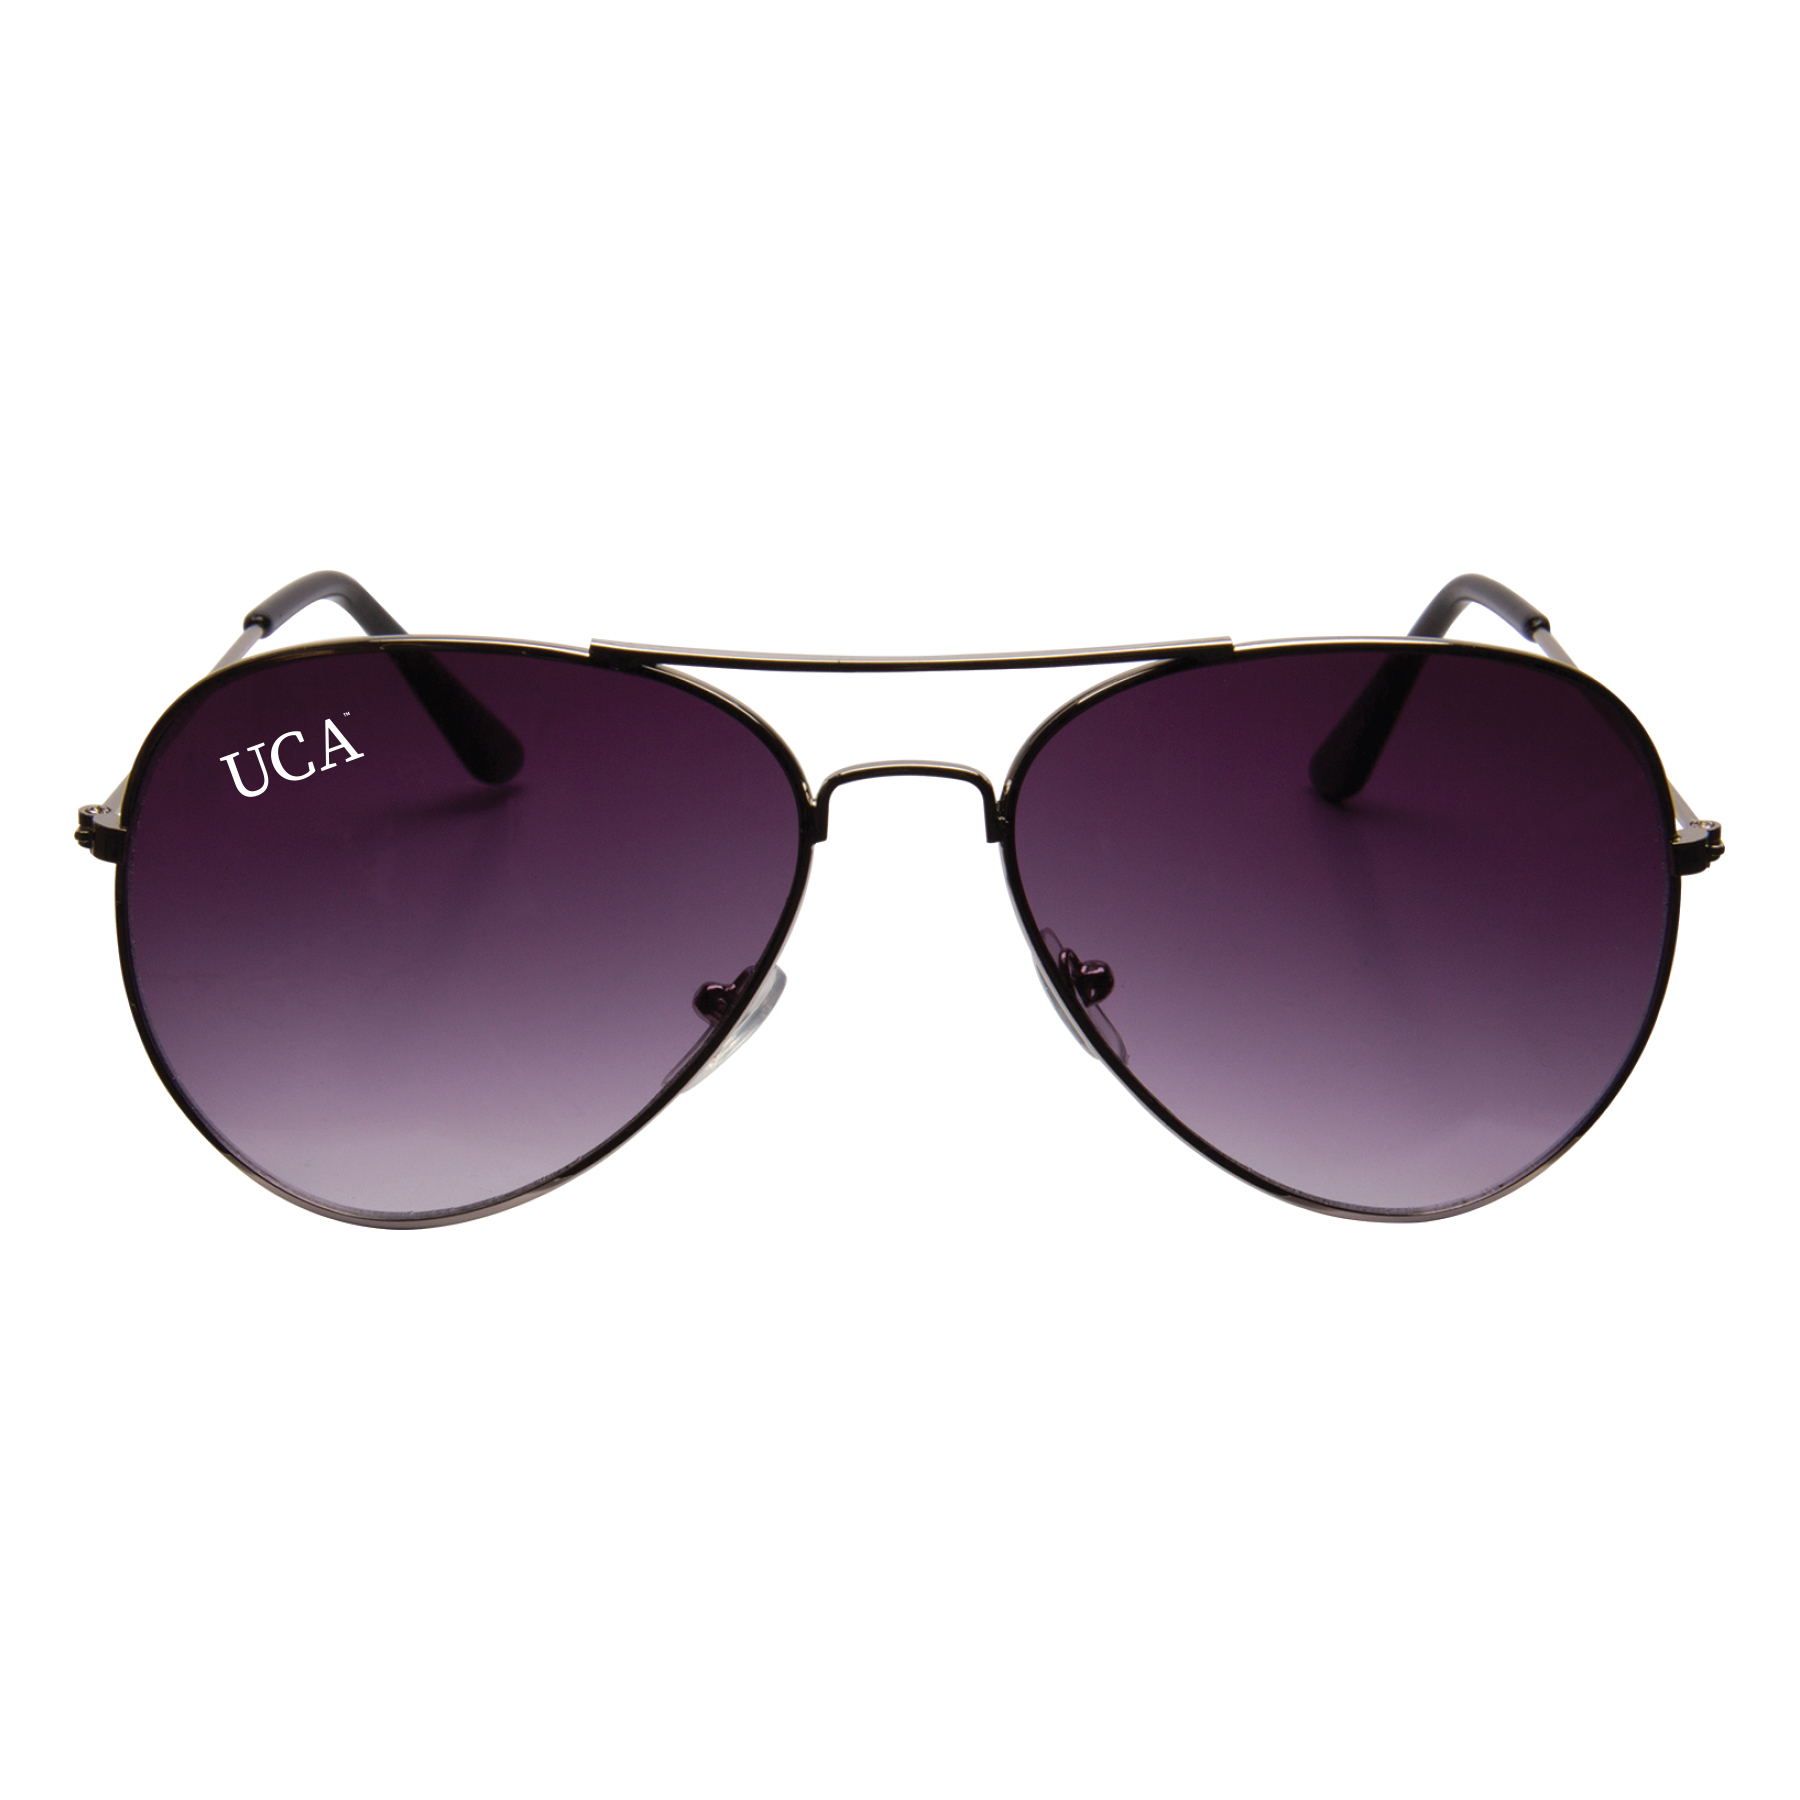 UCA Aviator Sunglasses